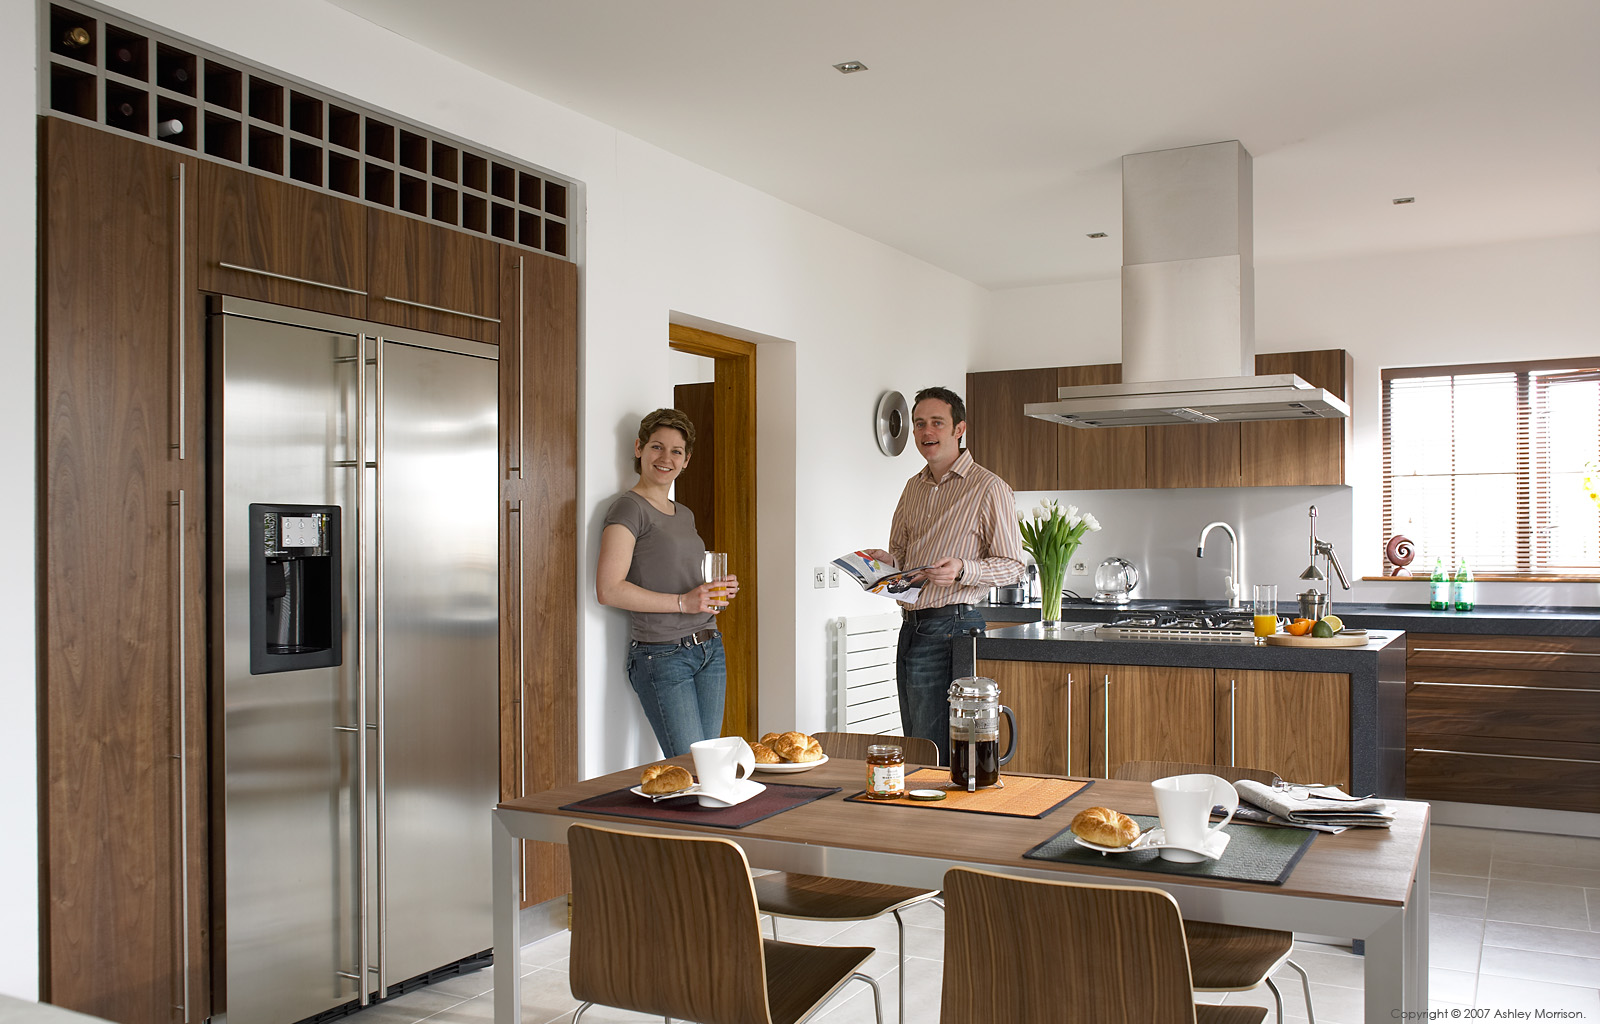 Vera Dengler and Patrick Murray in the kitchen of their semi detached house in a new development on the outskirts of Belfast.